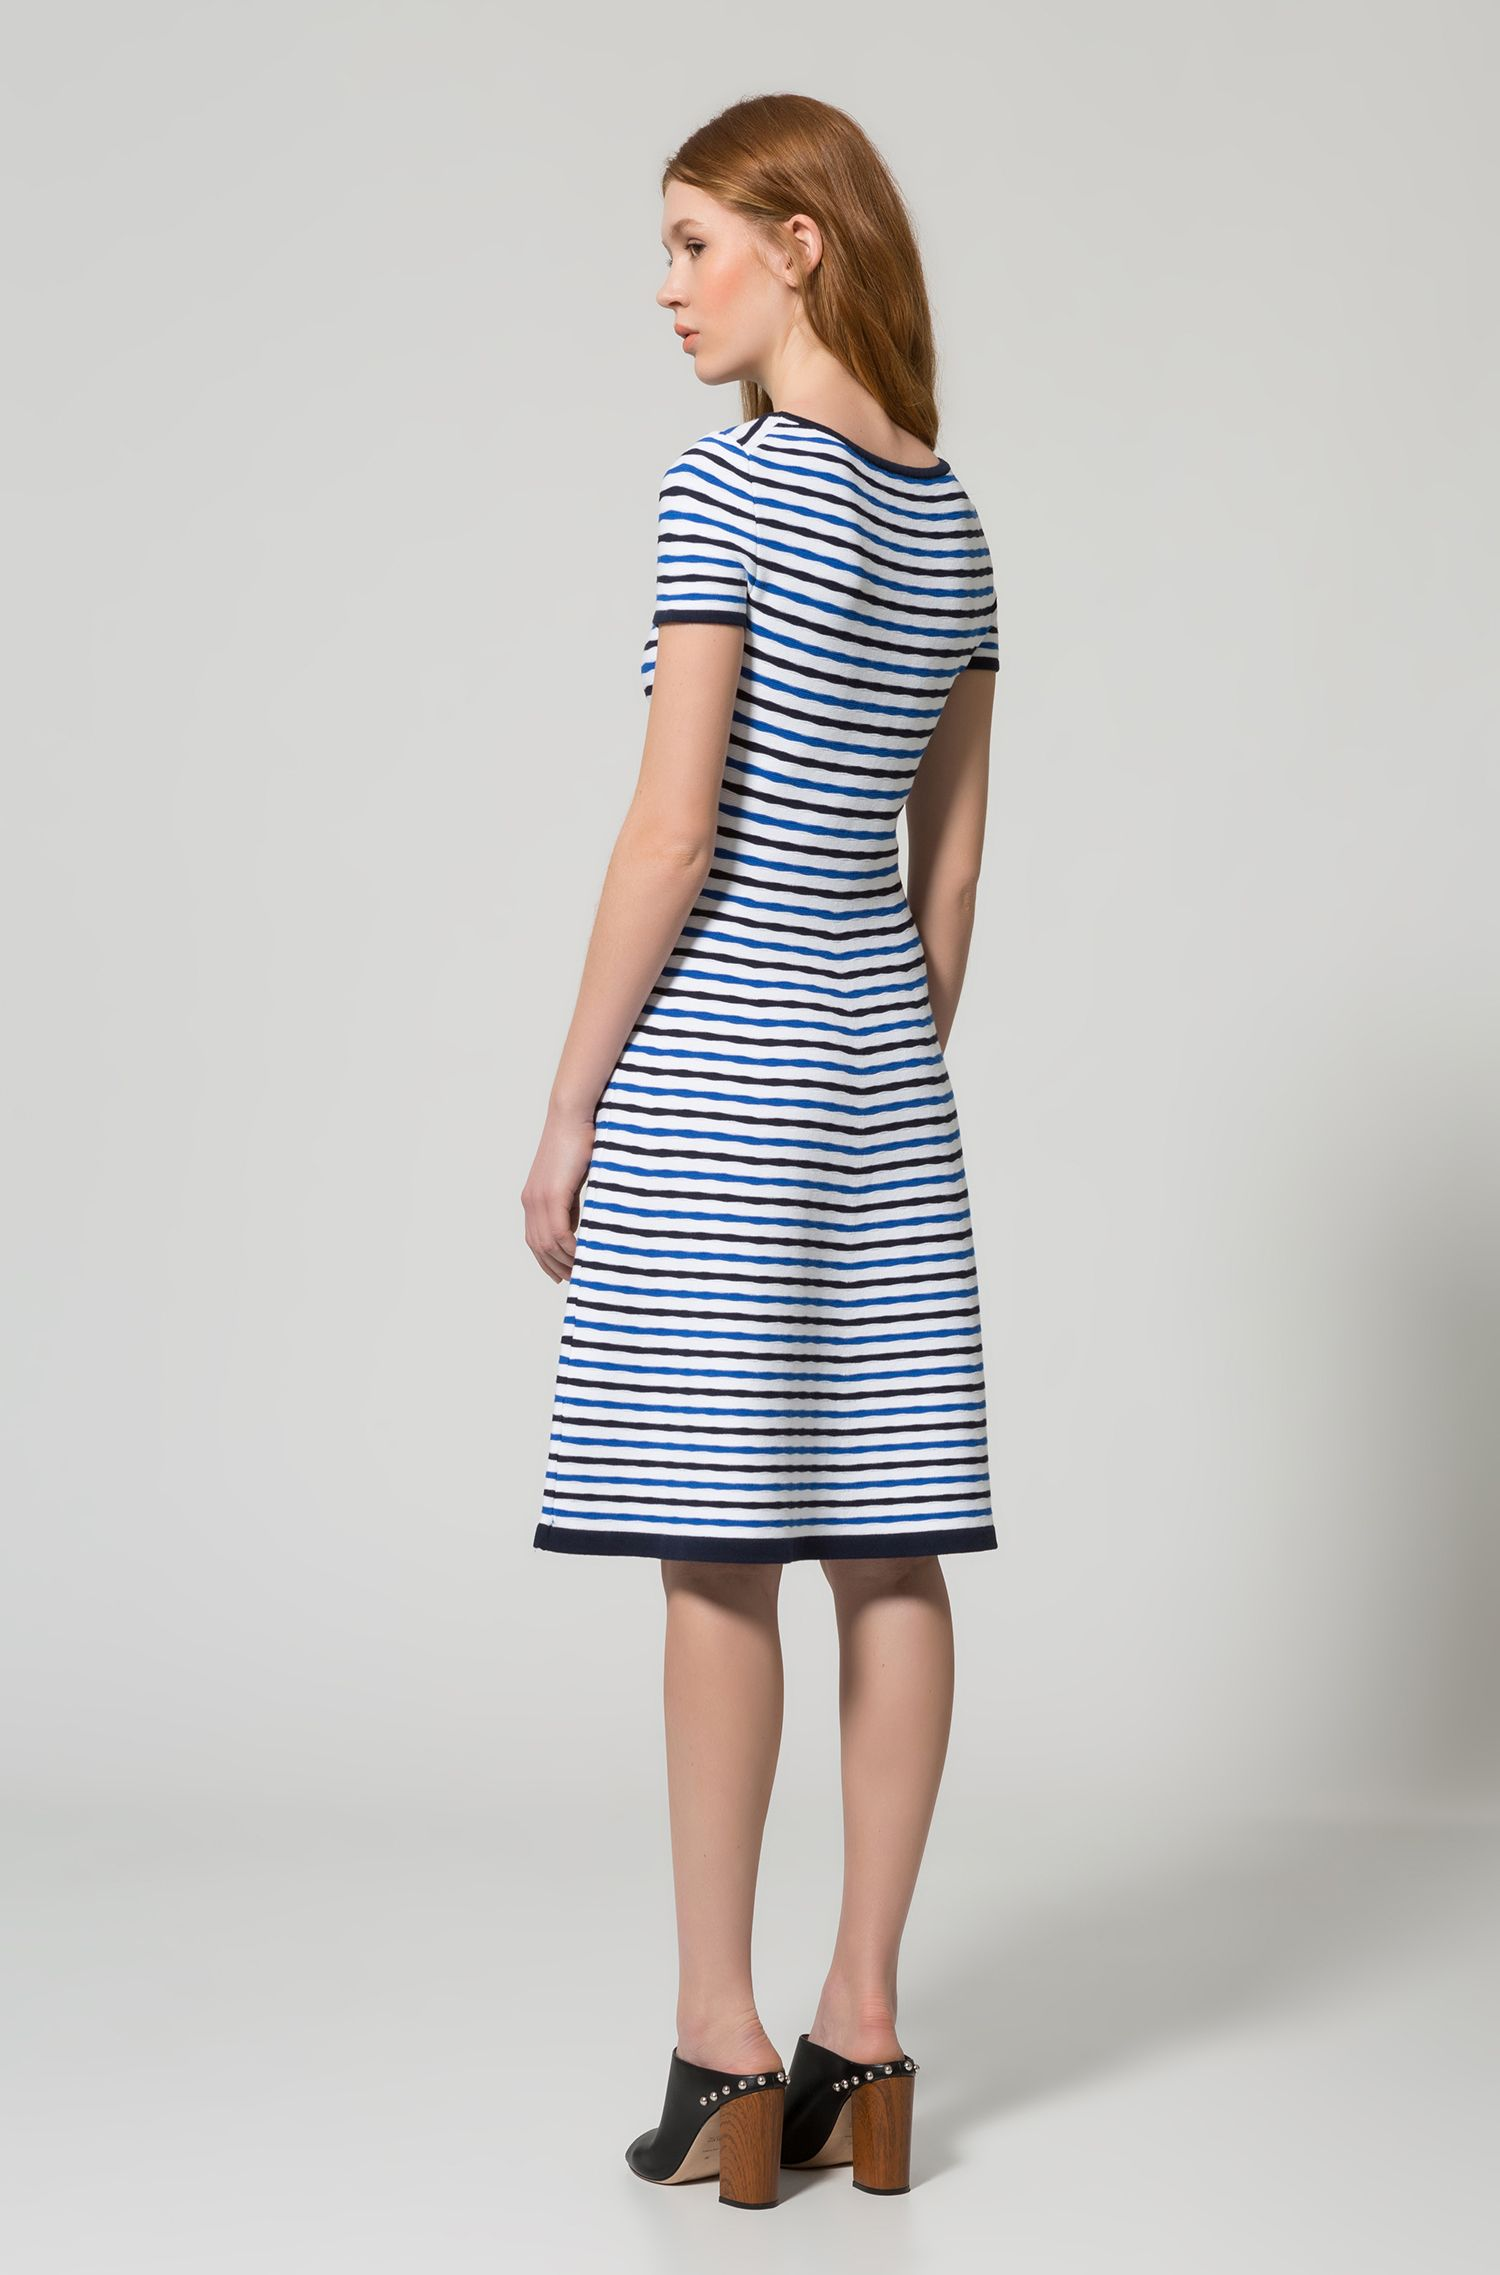 Striped A-Line Dress | Sawnia, Patterned